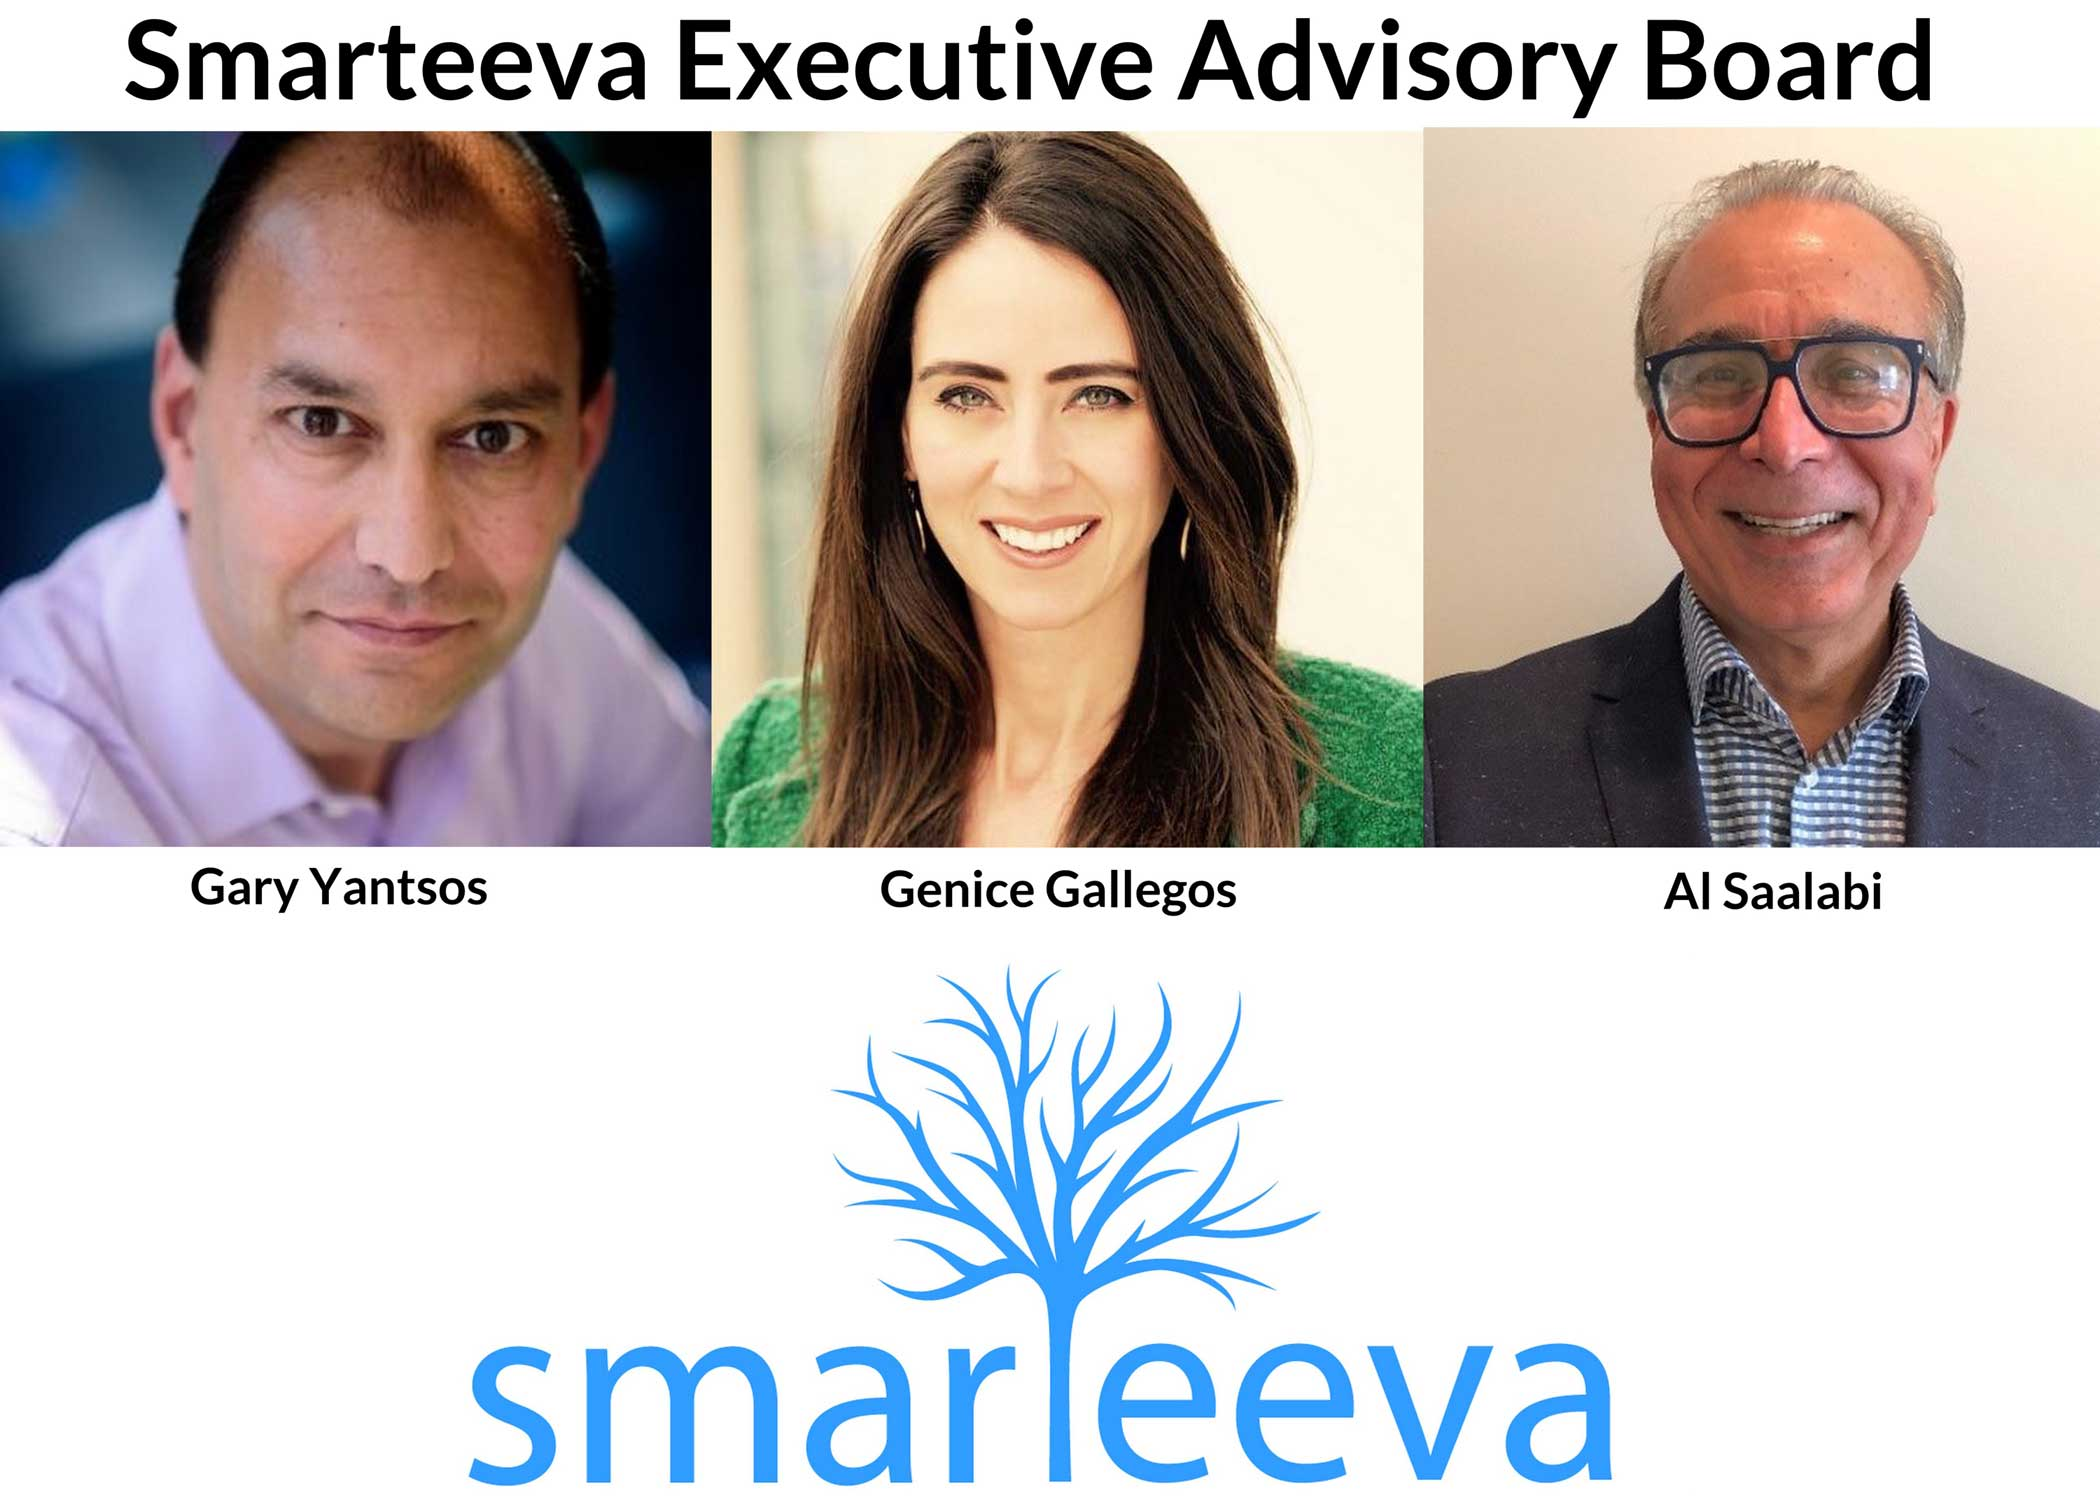 Smarteeva Executive Advisory Board